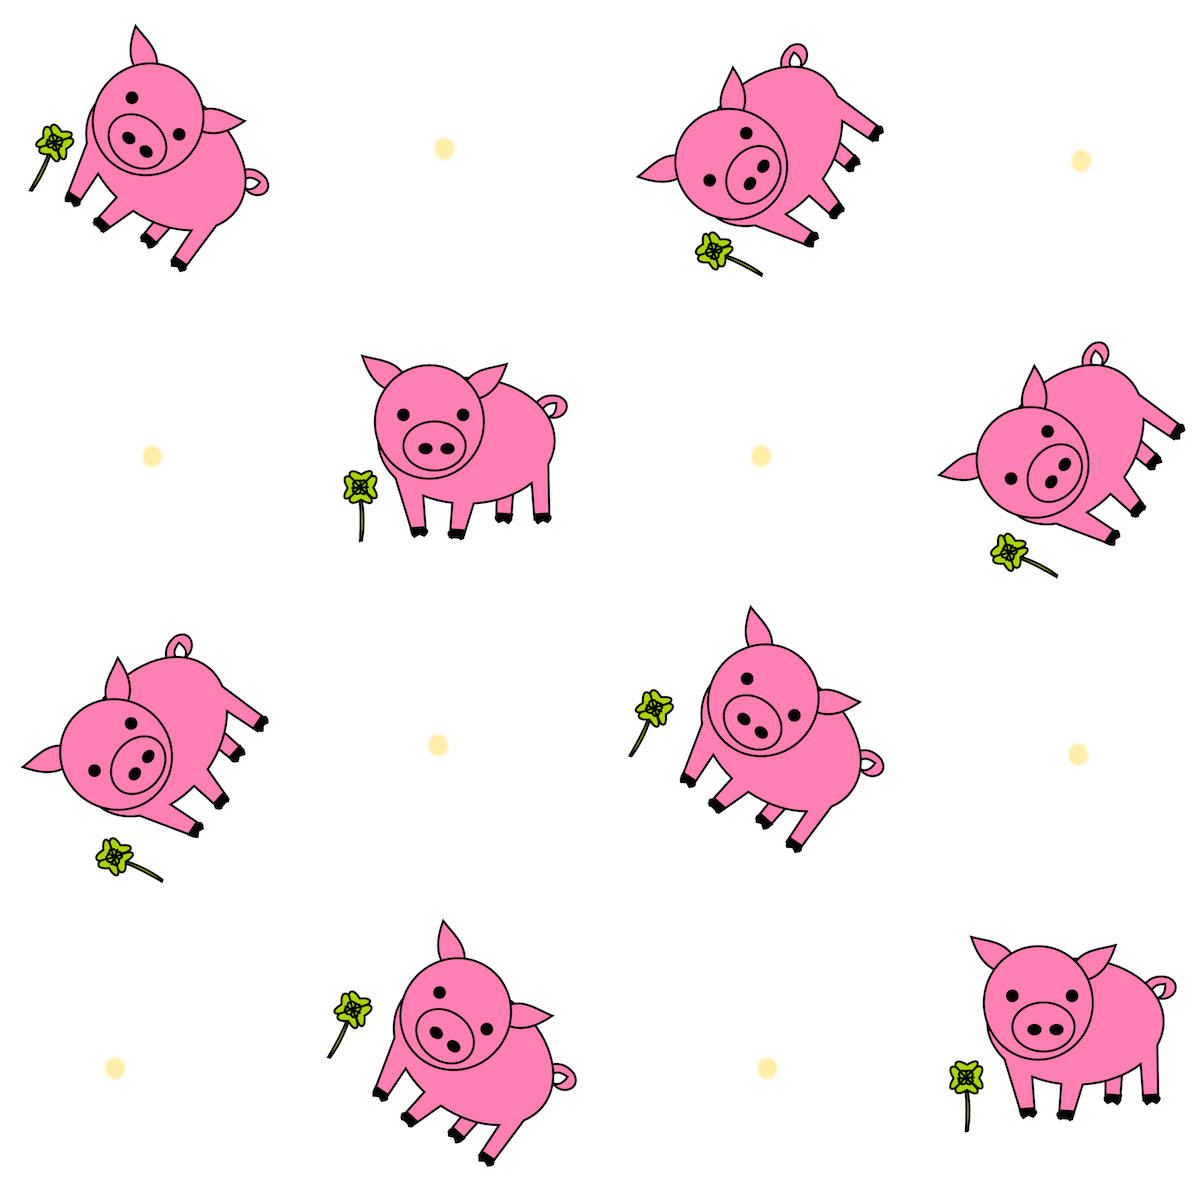 pigs essay Free coursework on creative writing the story of the three little pigs from  essayukcom, the uk essays company for essay, dissertation and coursework.